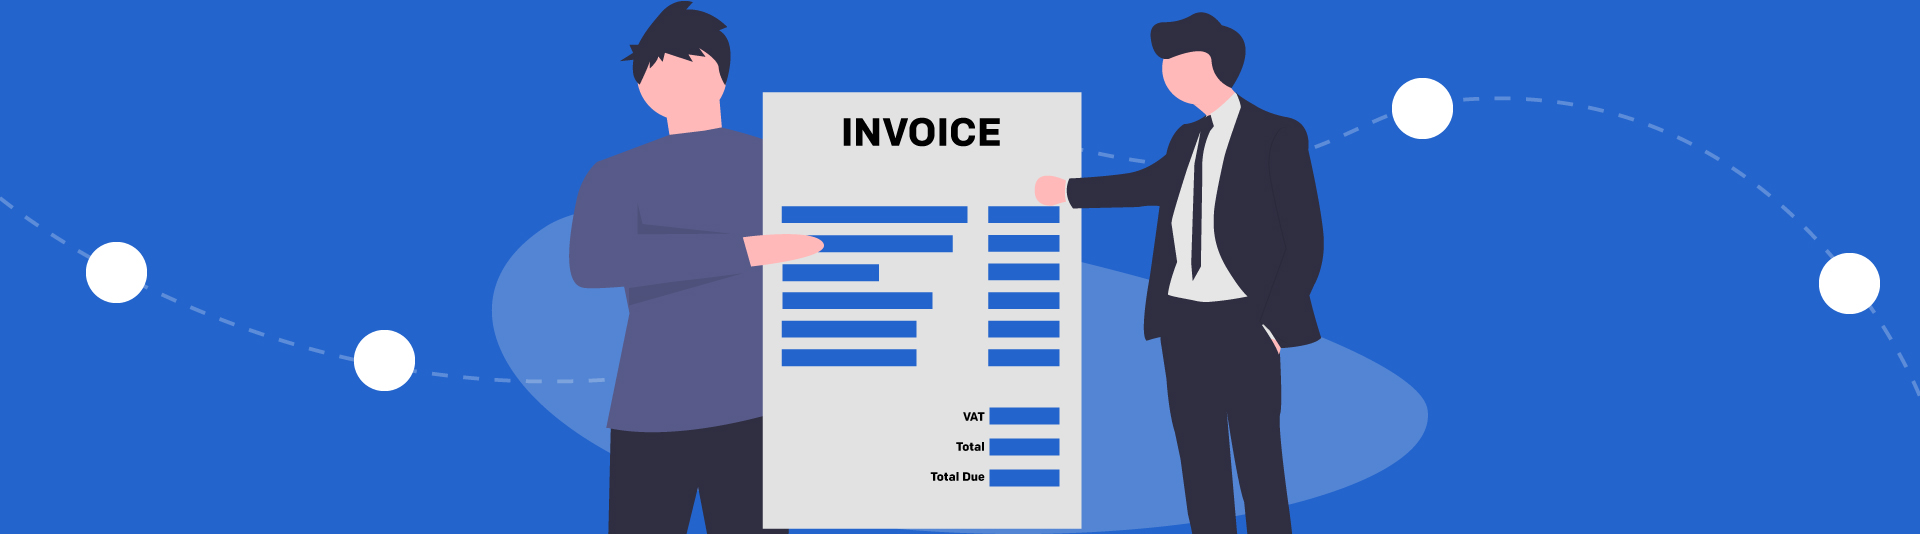 What Is a Self-Billing Invoice